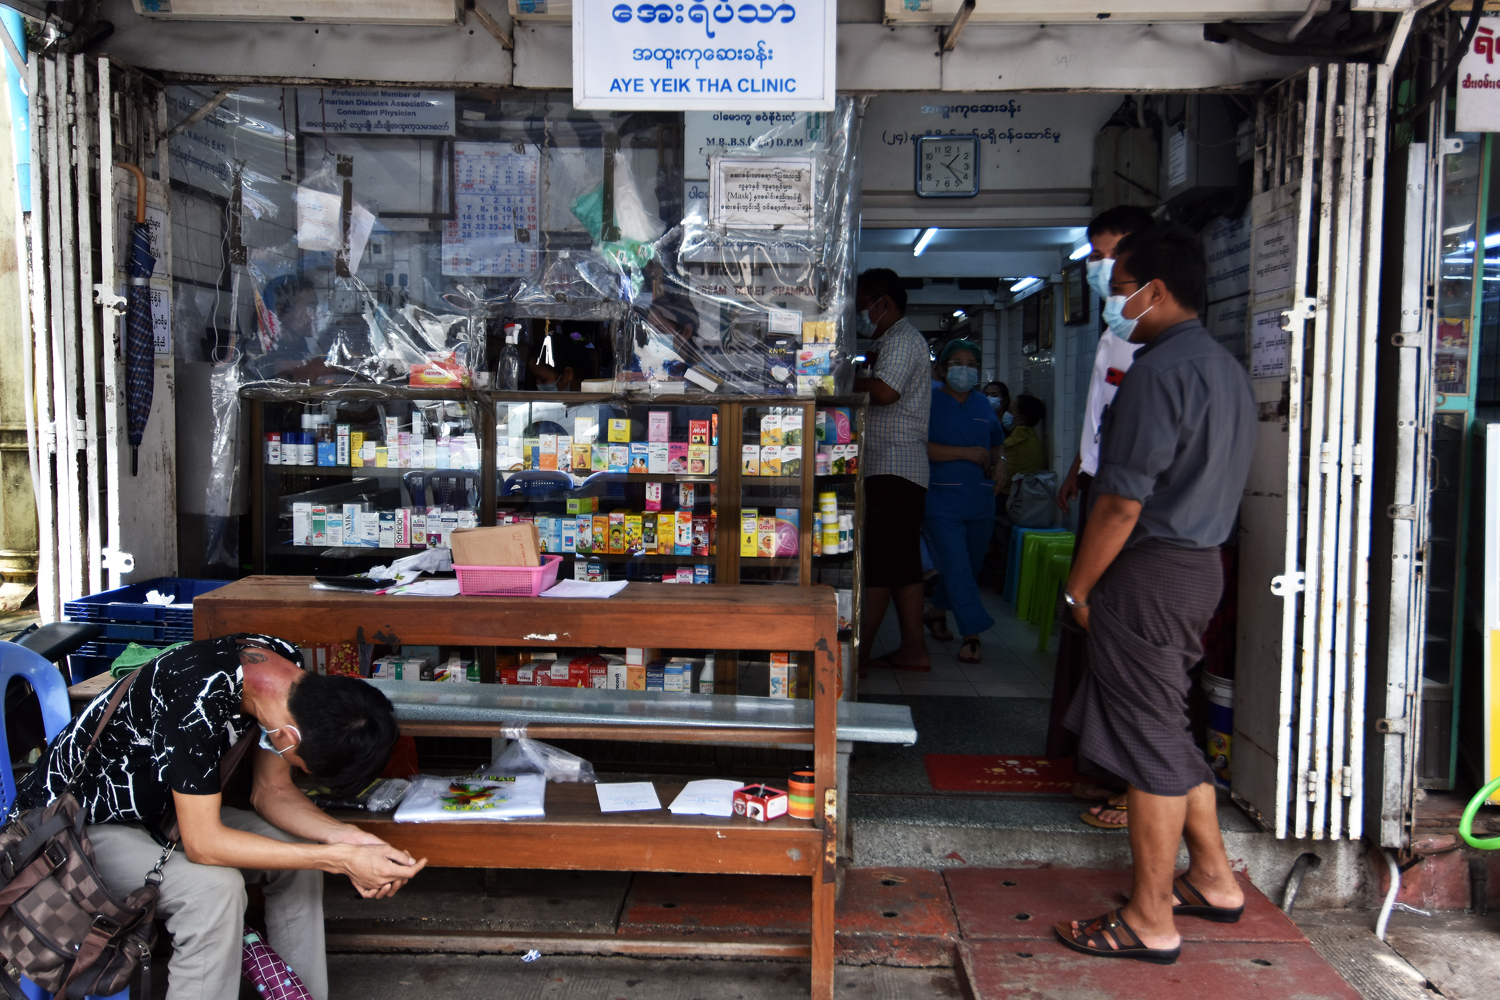 A private medical clinic in central Yangon on June 23, 2021 (Frontier)